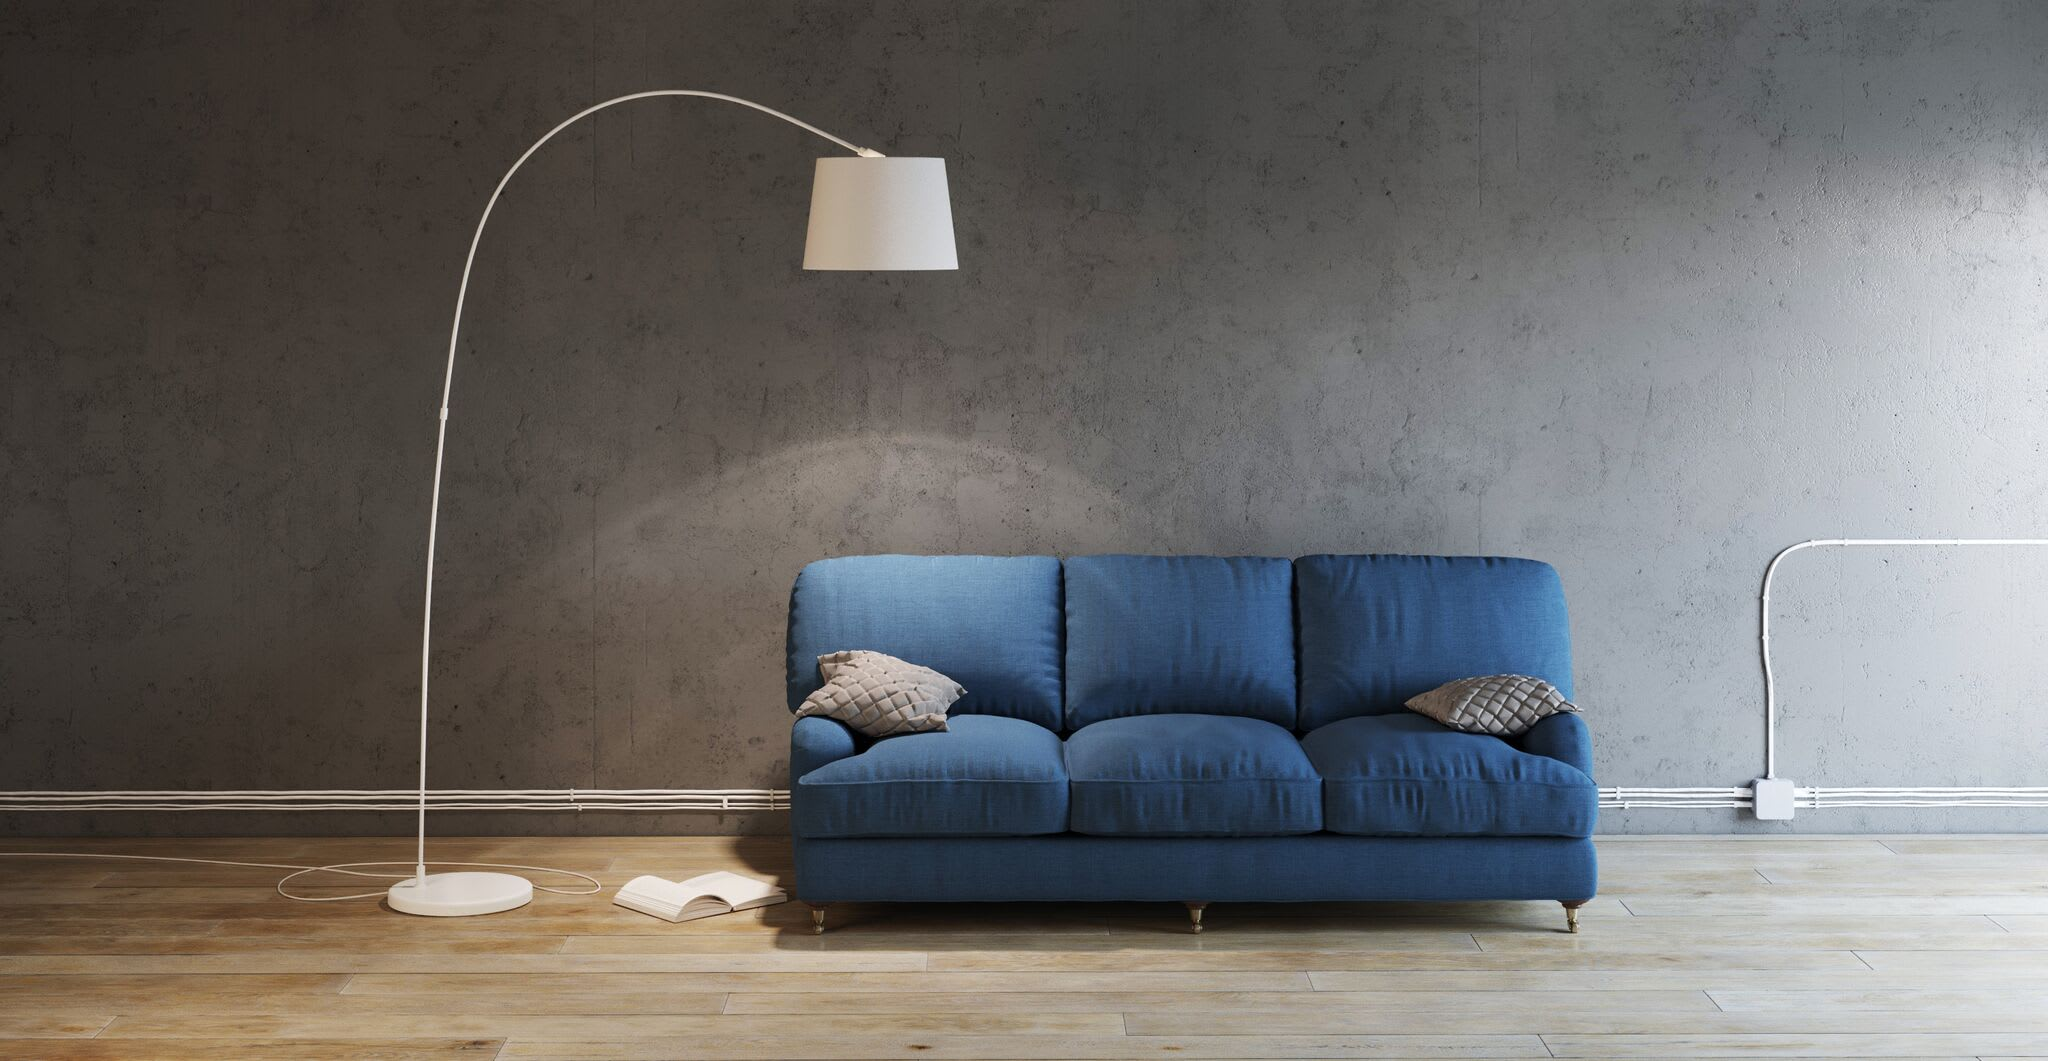 A minimal sofa in a waiting space